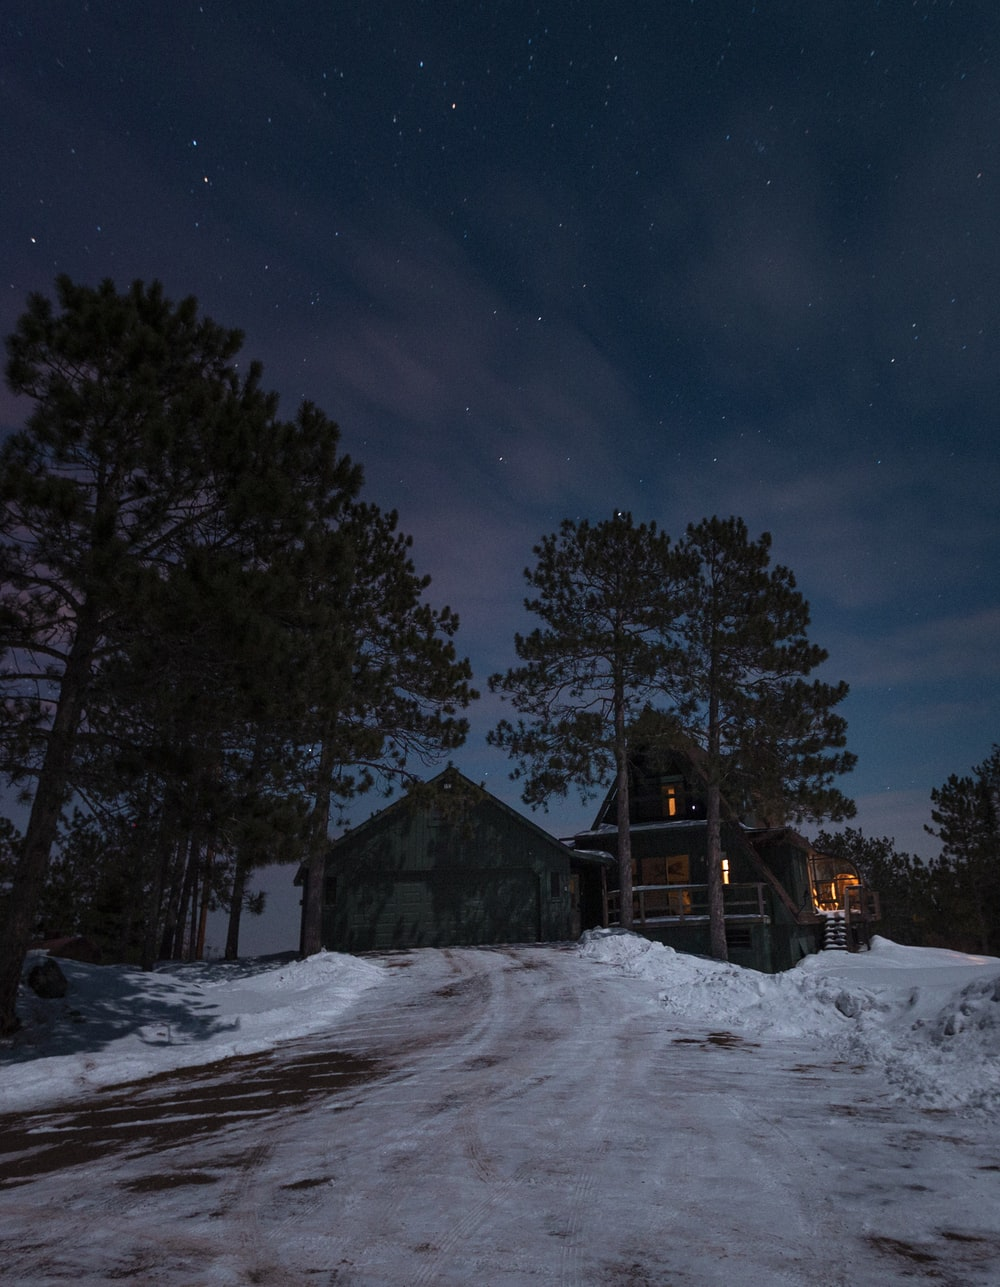 brown wooden house in the middle of snow covered field during night time